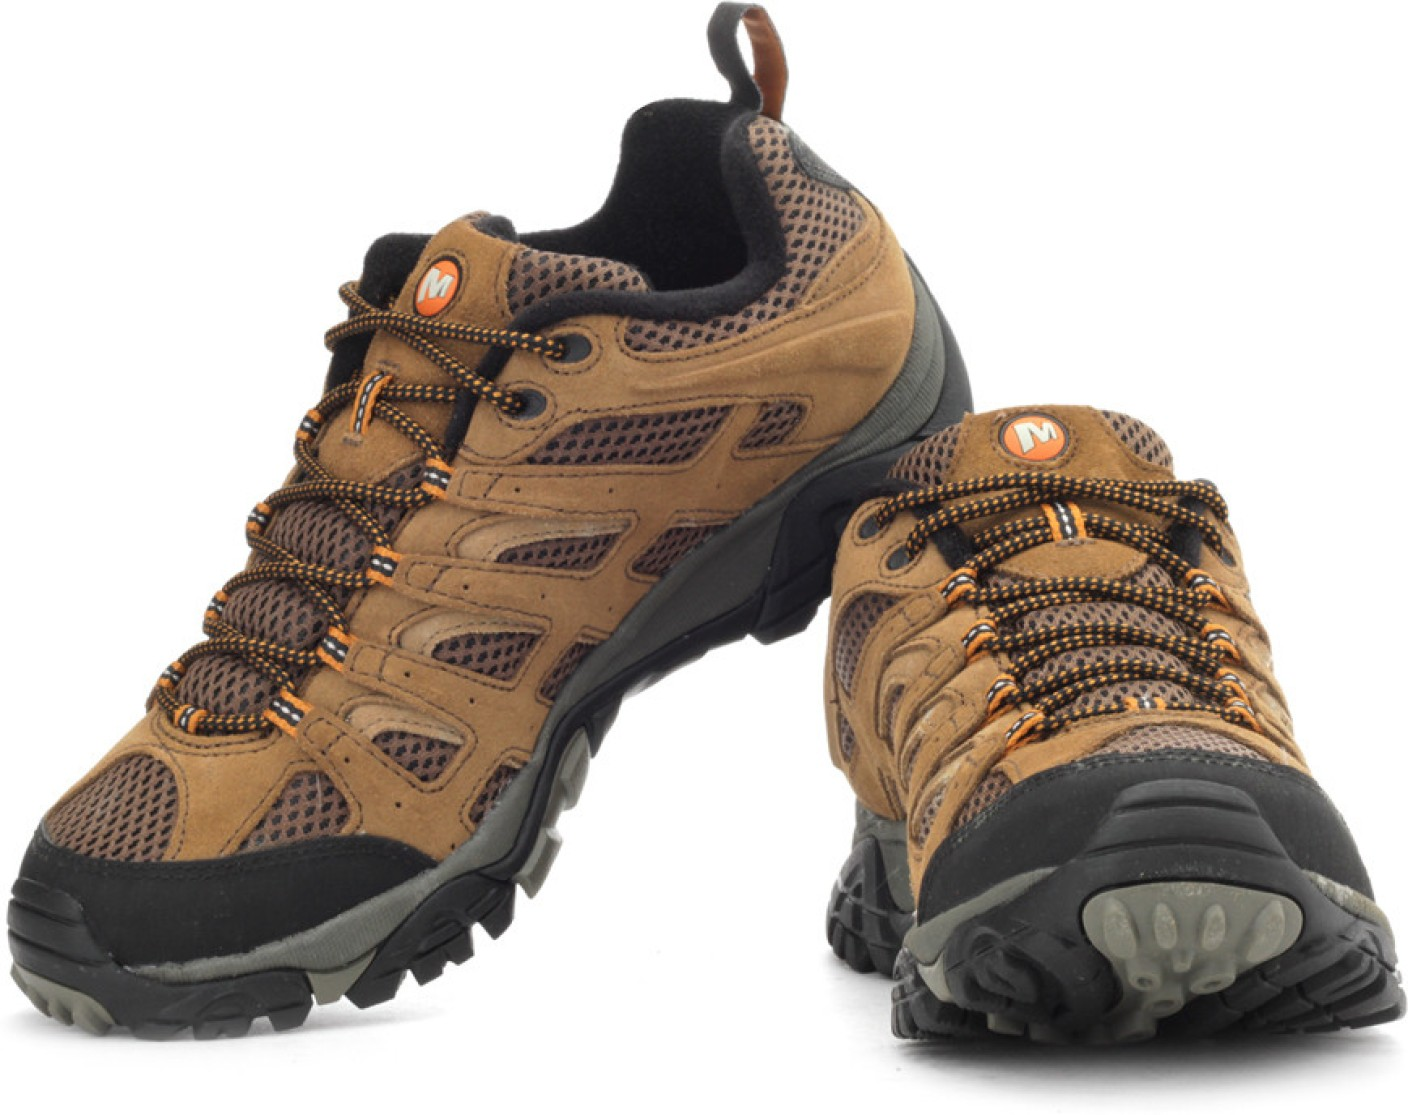 Merrell Moab Ventilator Trekking Shoes Wishlist